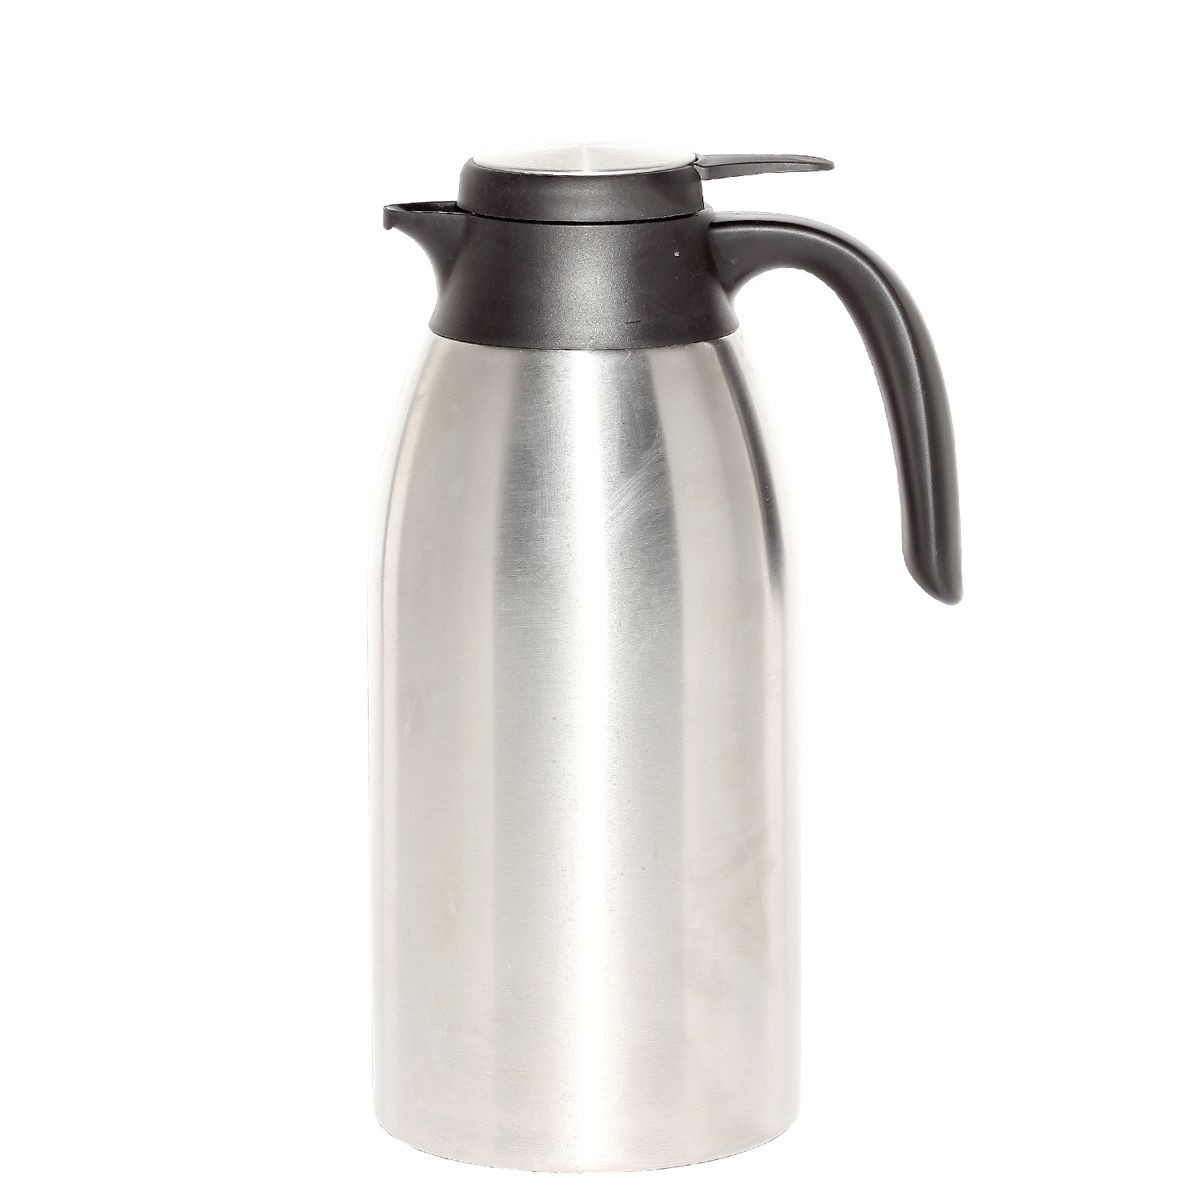 Service Ideas FCC20SS Stainless Steel Creamer, 2 Liter